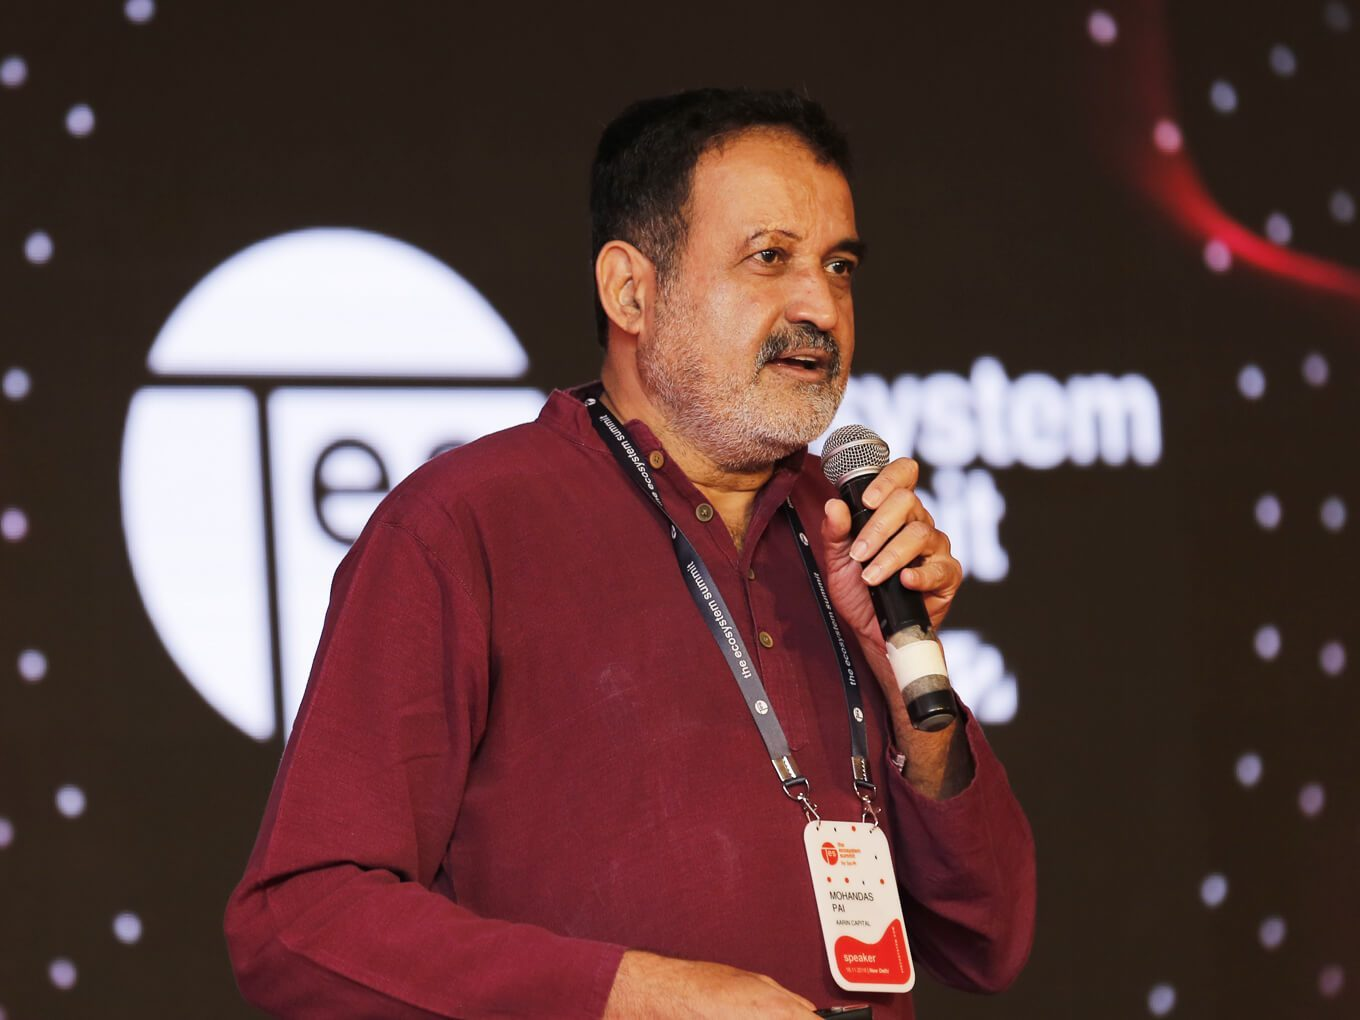 Union Budget 2020: For Startups, It's Disappointing, Says Mohandas Pai